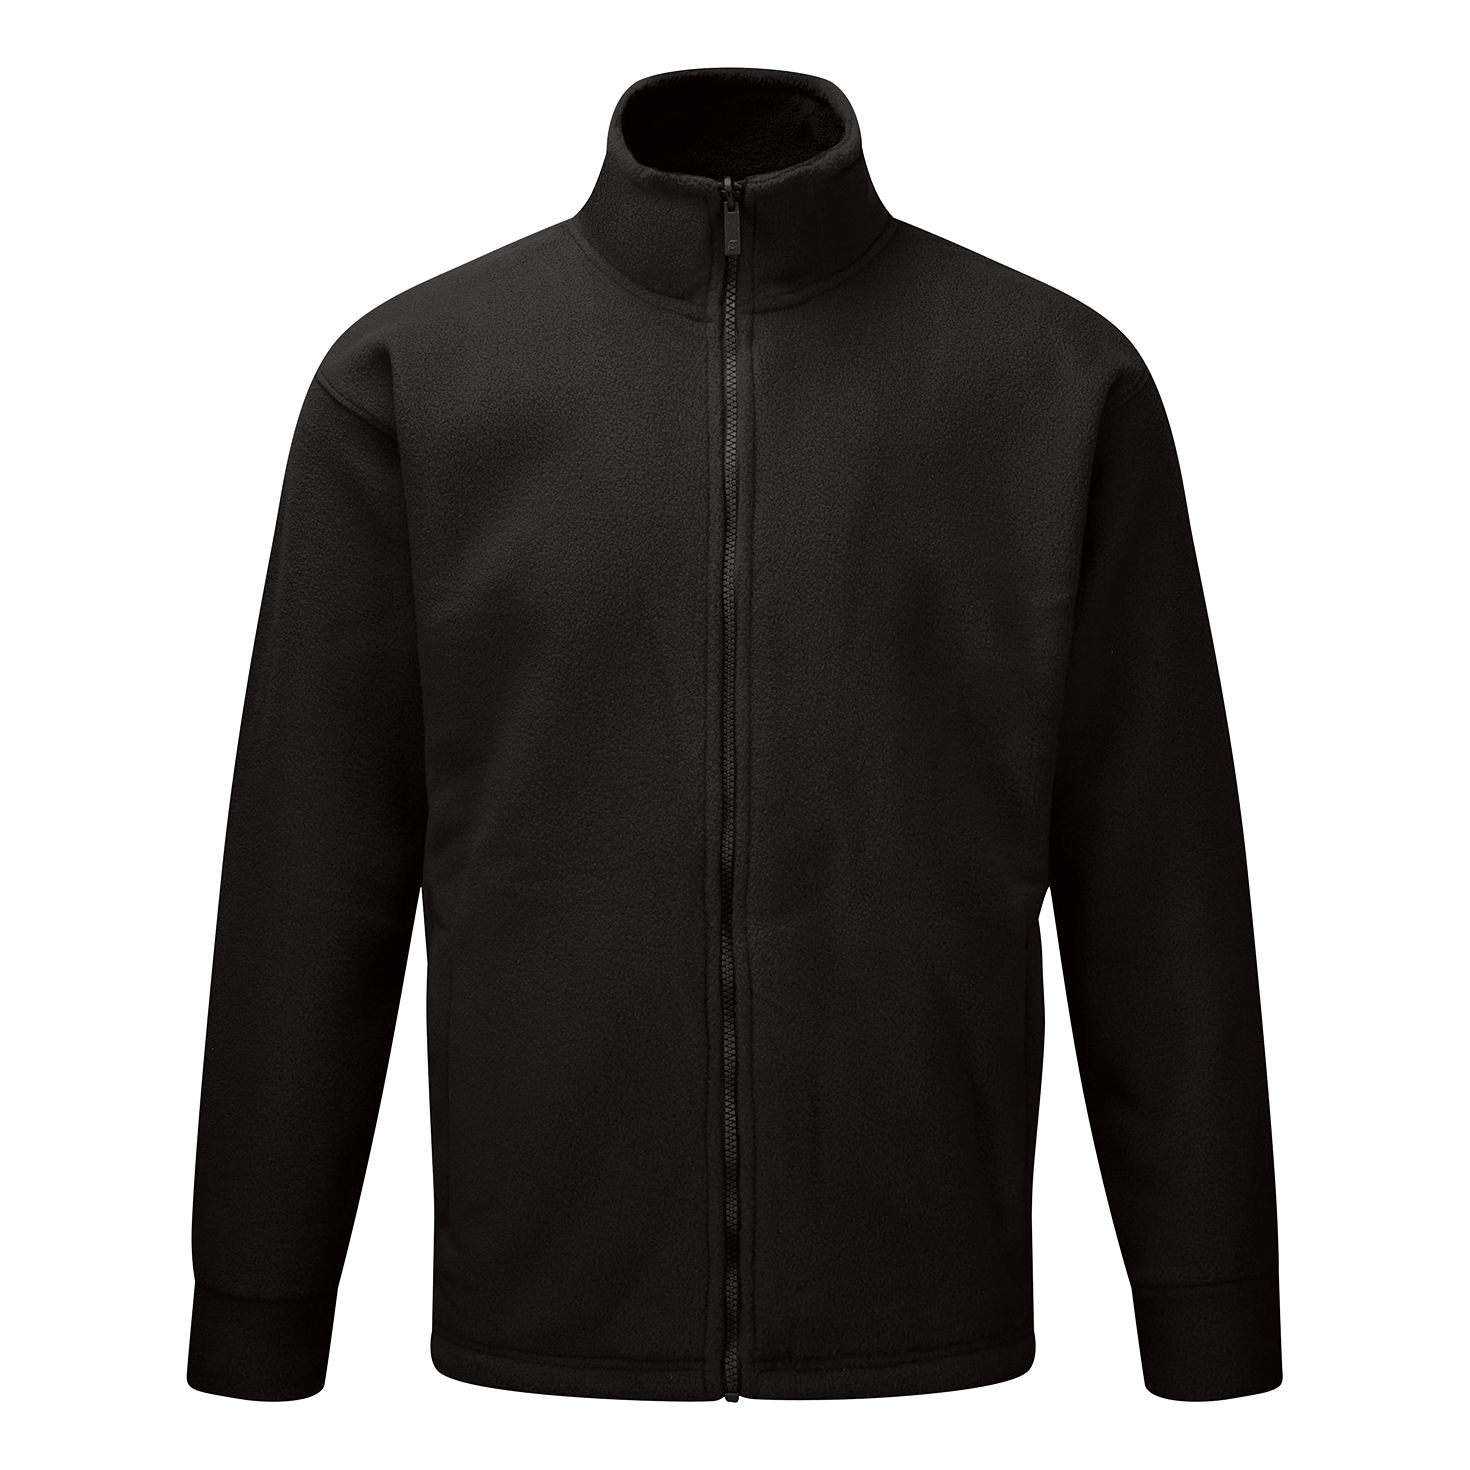 Classic Fleece Jacket Elasticated Cuffs Full Zip Front 4XL Black Ref FLJBL4XL 1-3 Days Lead Time